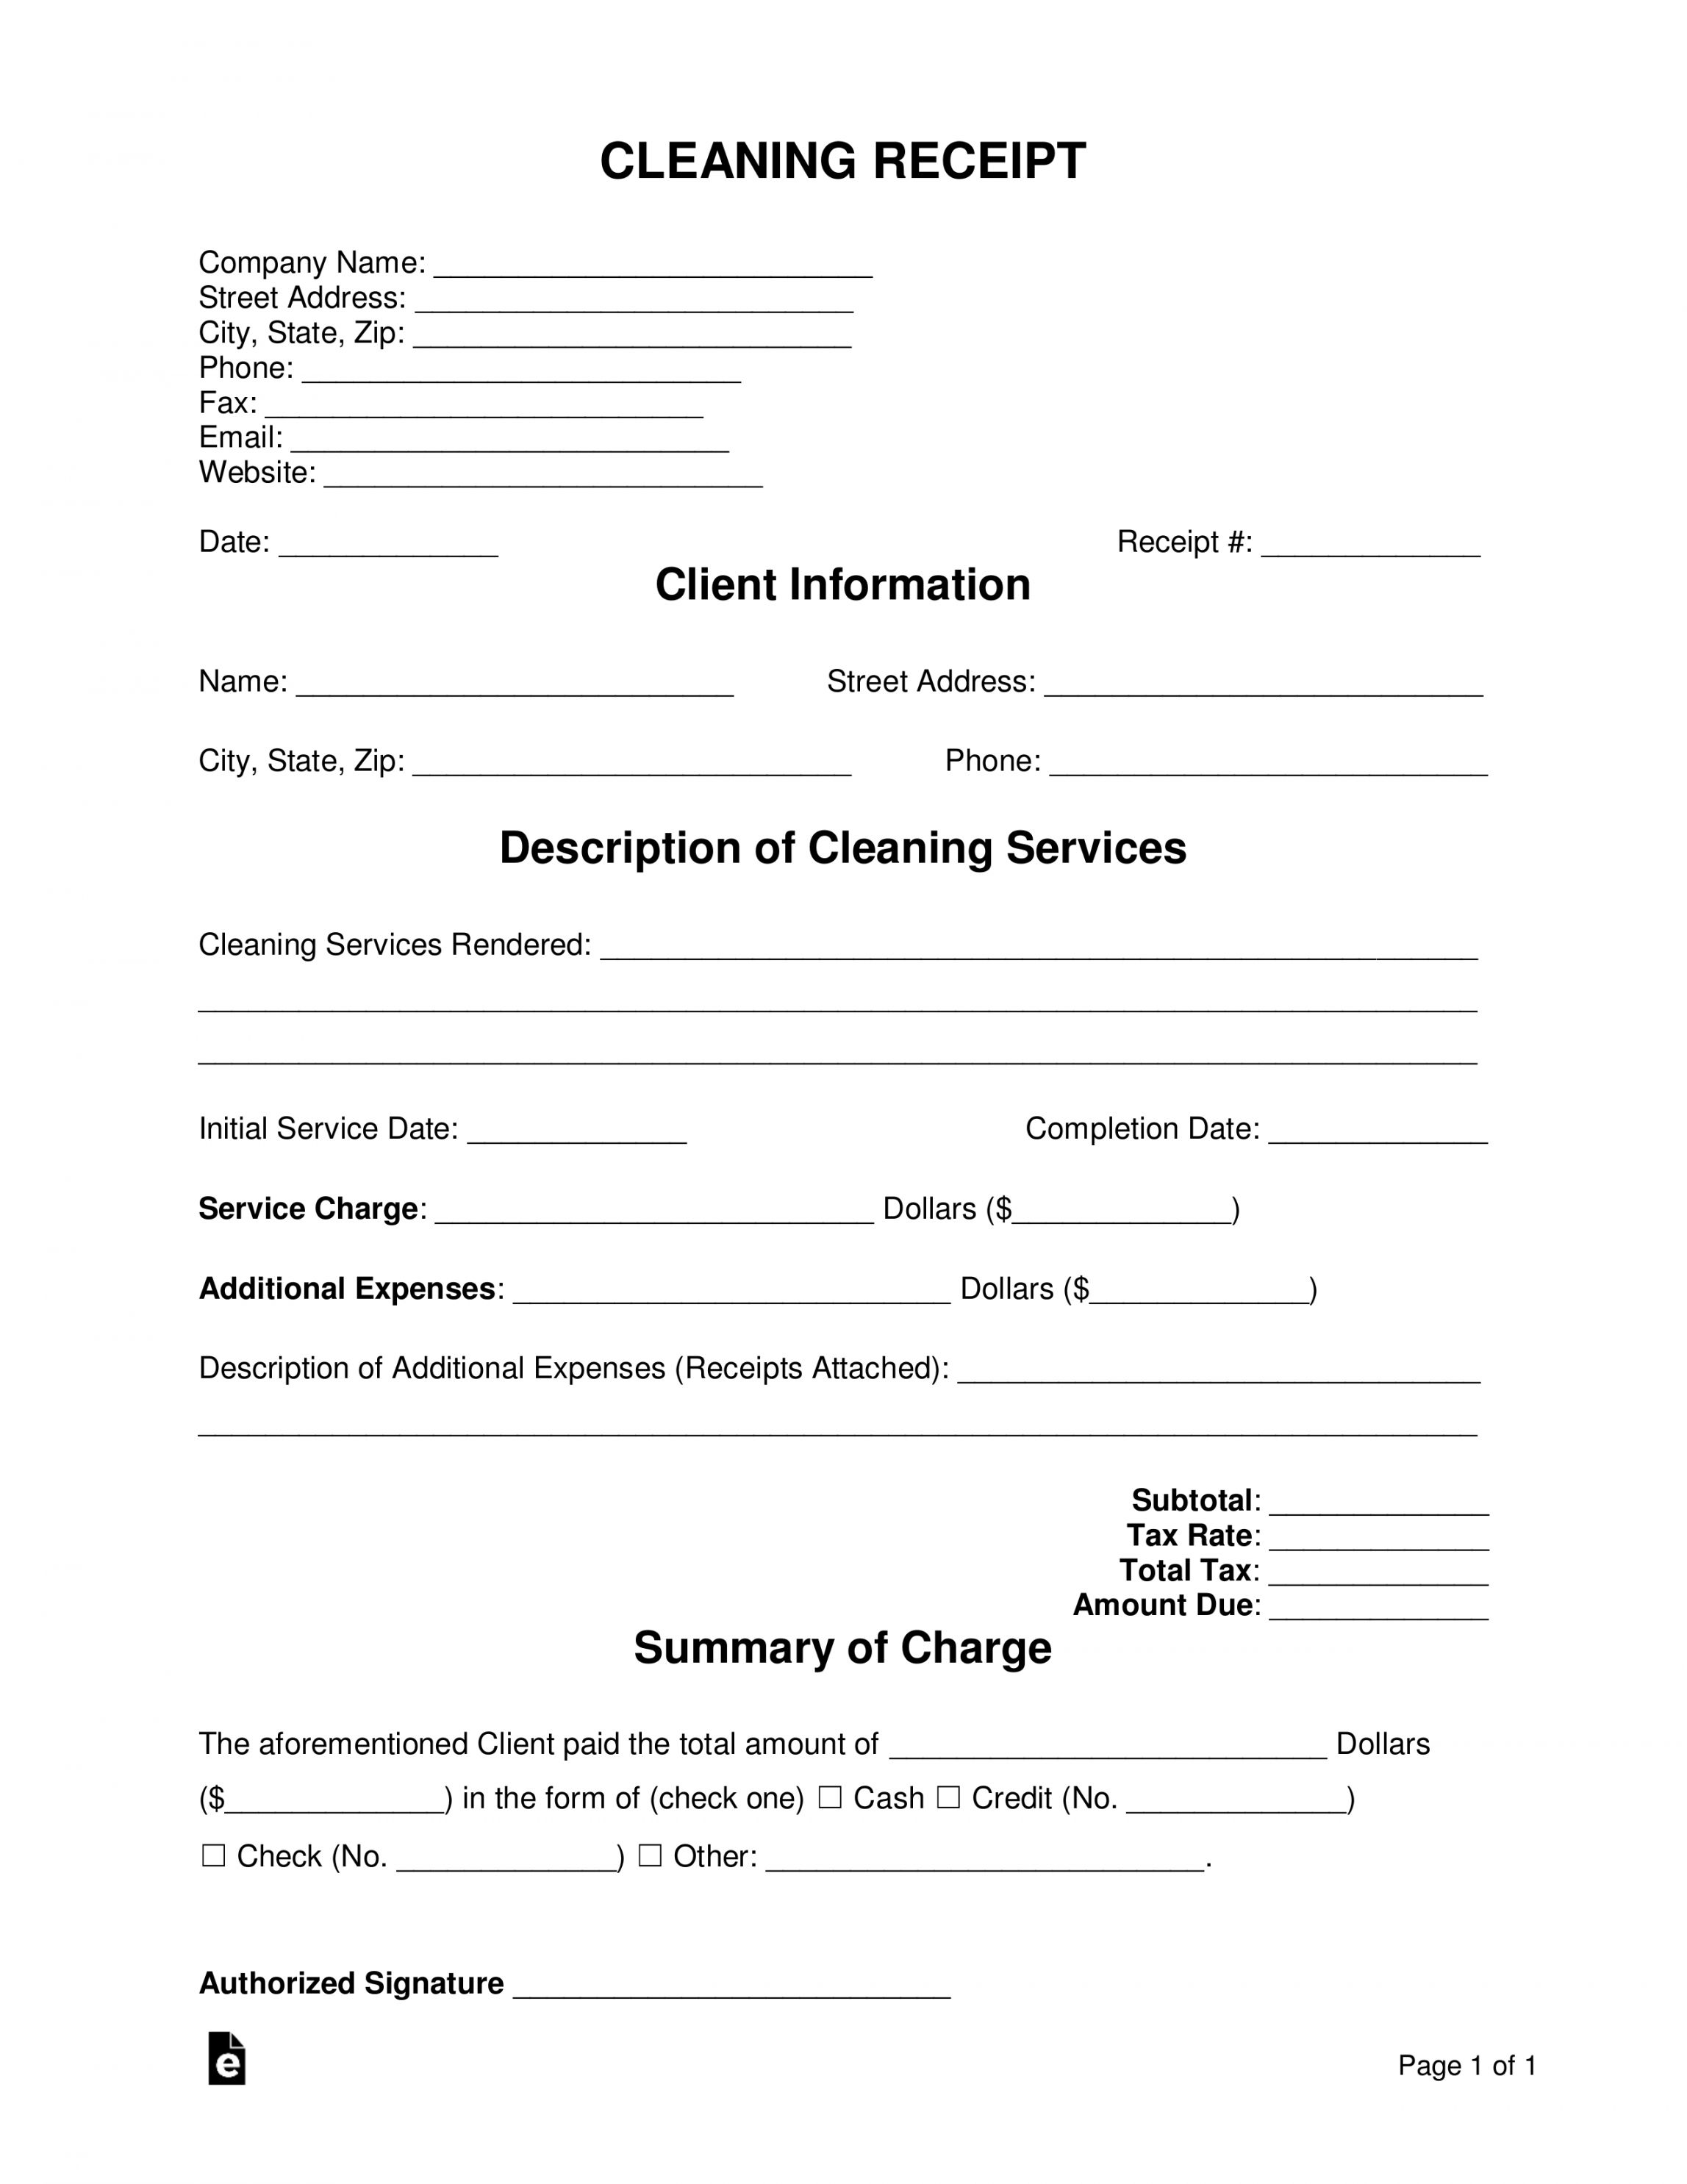 Browse Our Example Of Cleaning Company Receipt Template Receipt Template Invoice Template Receipt